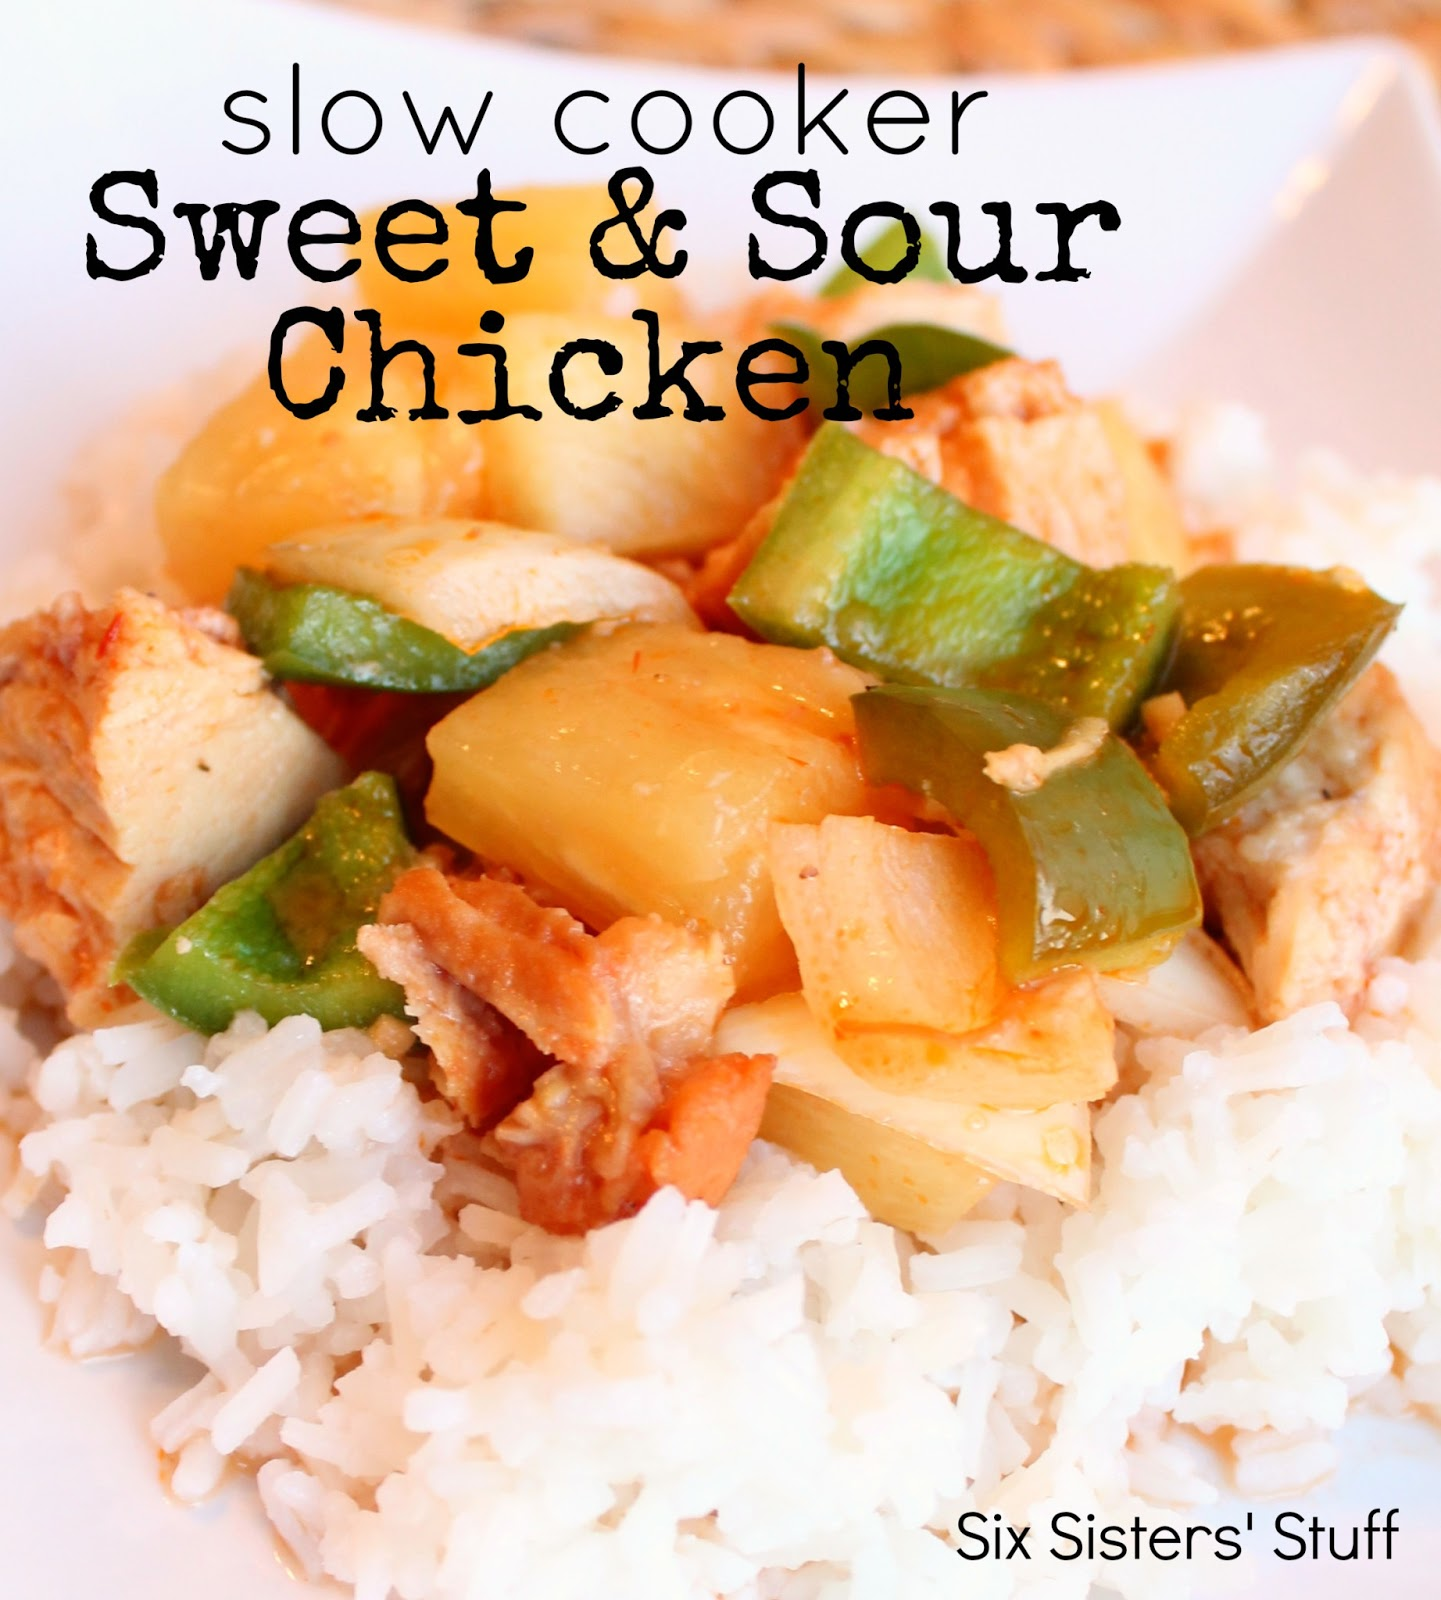 Slow Cooker Sweet and Sour Chicken Recipe | Six Sisters' Stuff